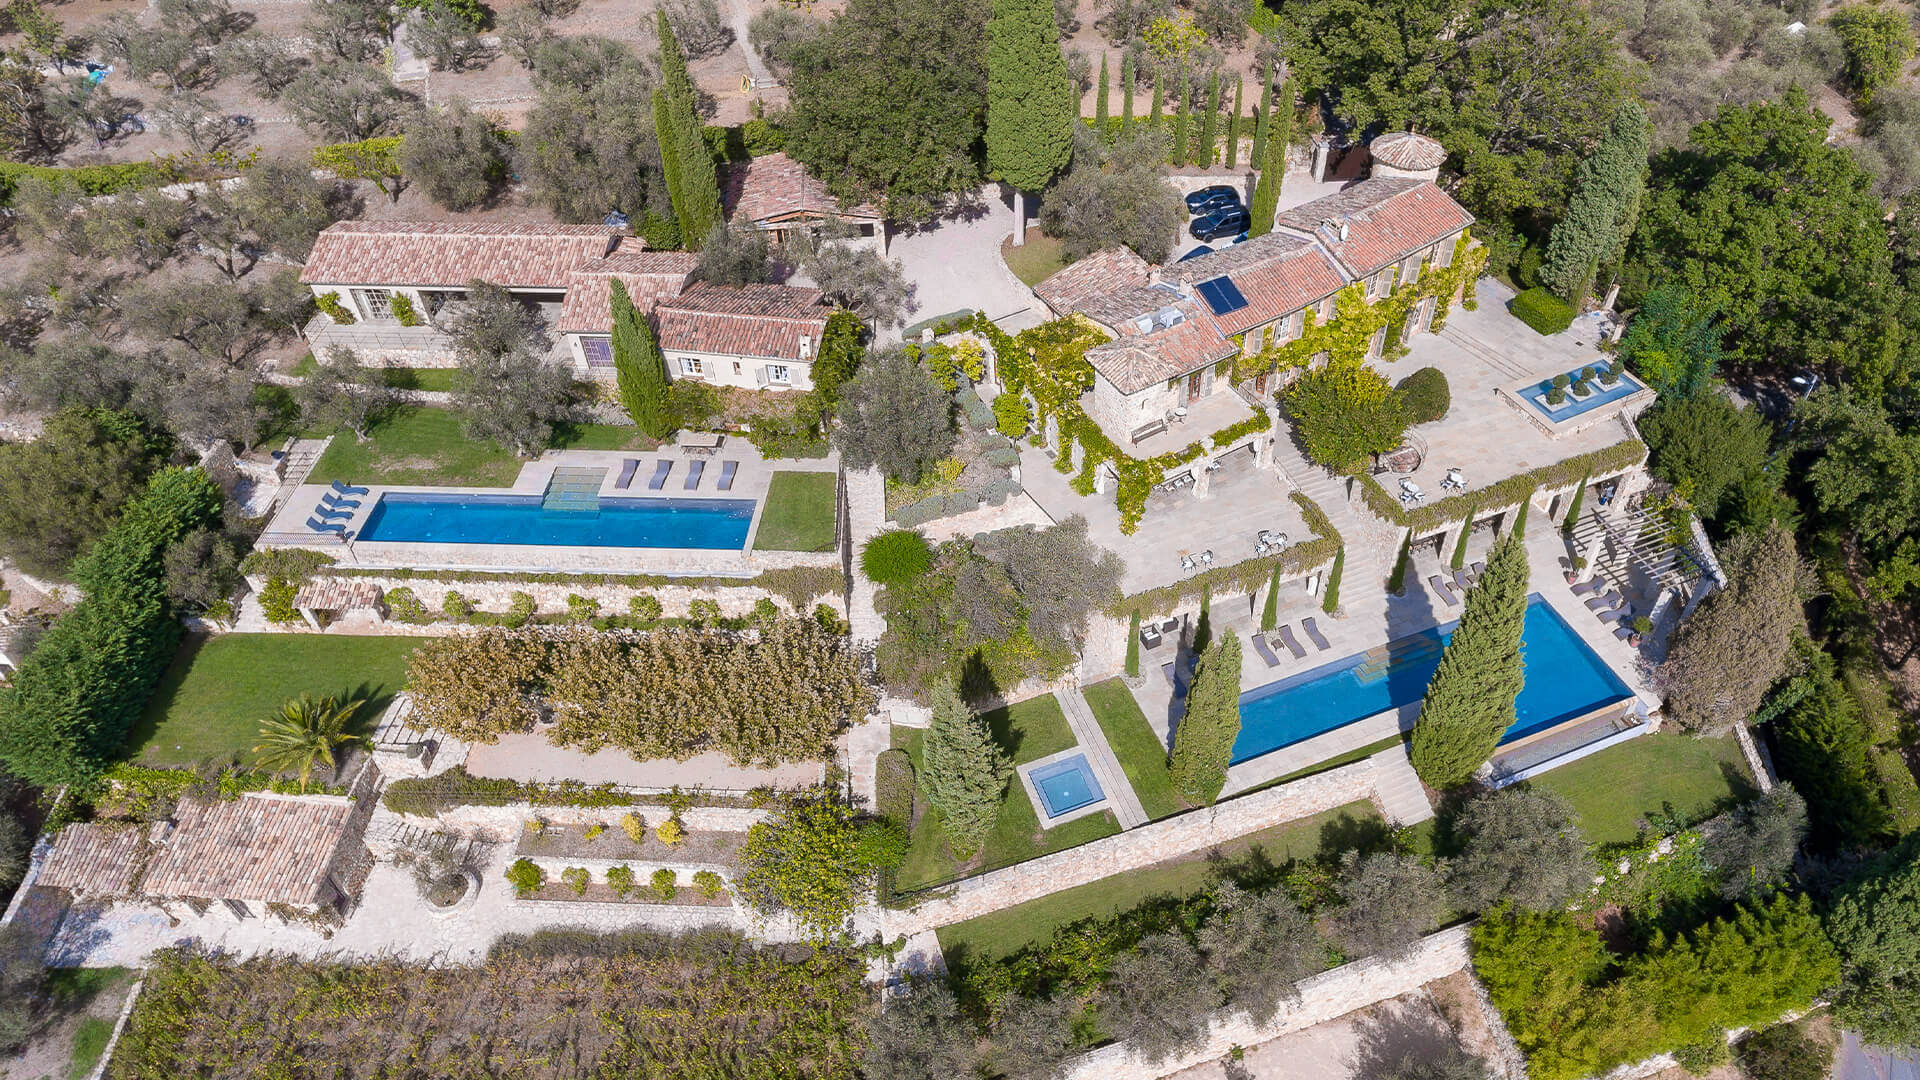 Bastide Provencale villa view from the air